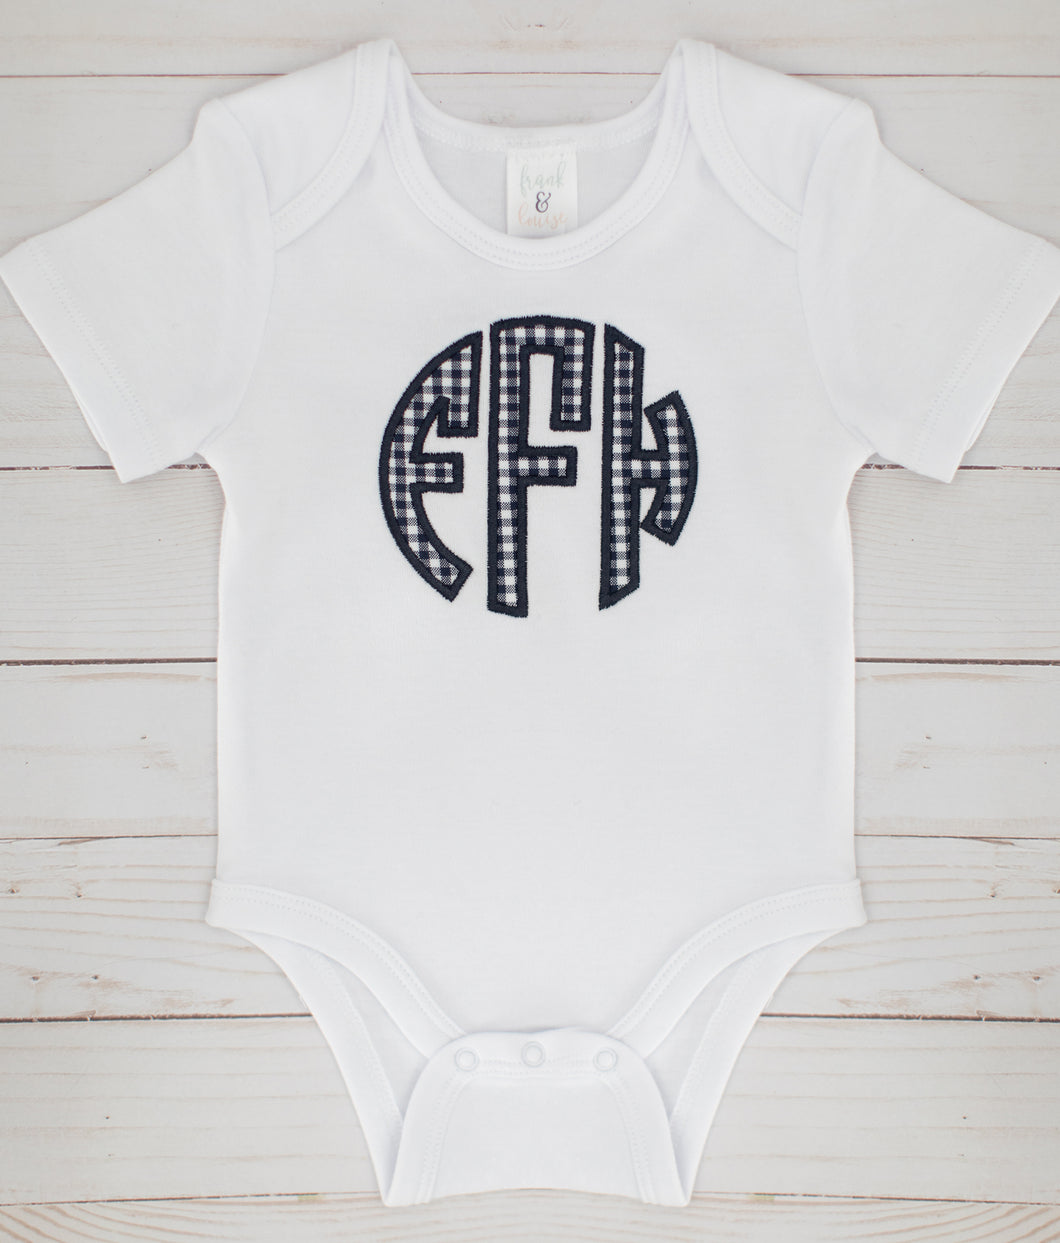 Navy Applique Monogram Onesie